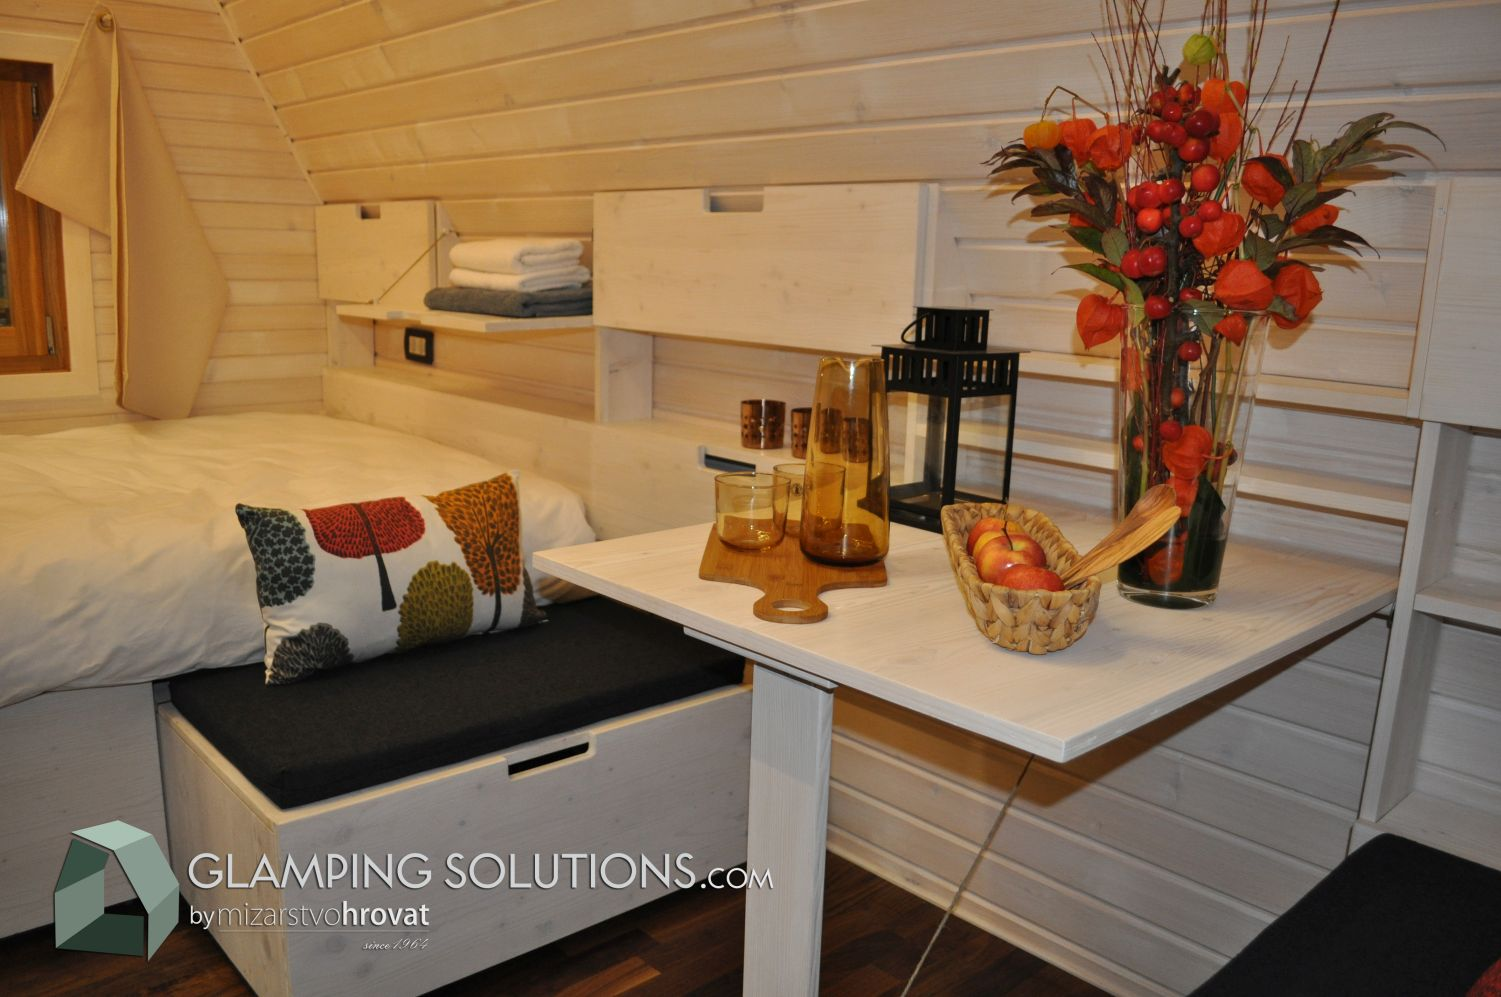 Glamping Solutions Interior (5)